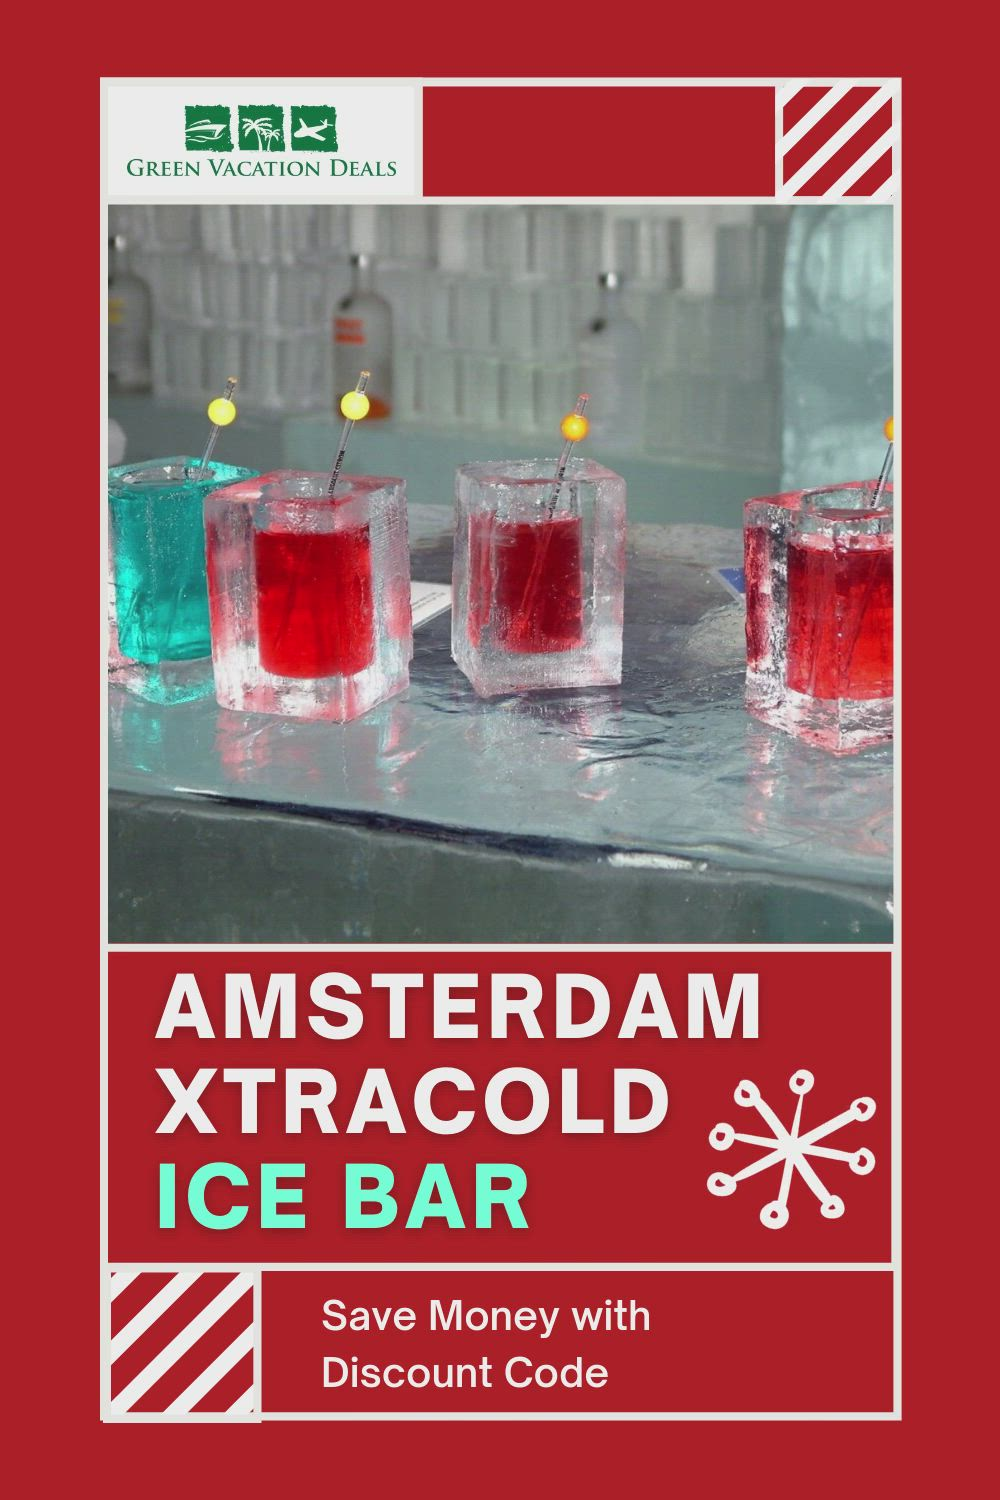 Amsterdam Xtracold Ice Bar Discount Code Green Vacation Deals Video Video In 2020 Ice Bars Amsterdam Bar Amsterdam Travel